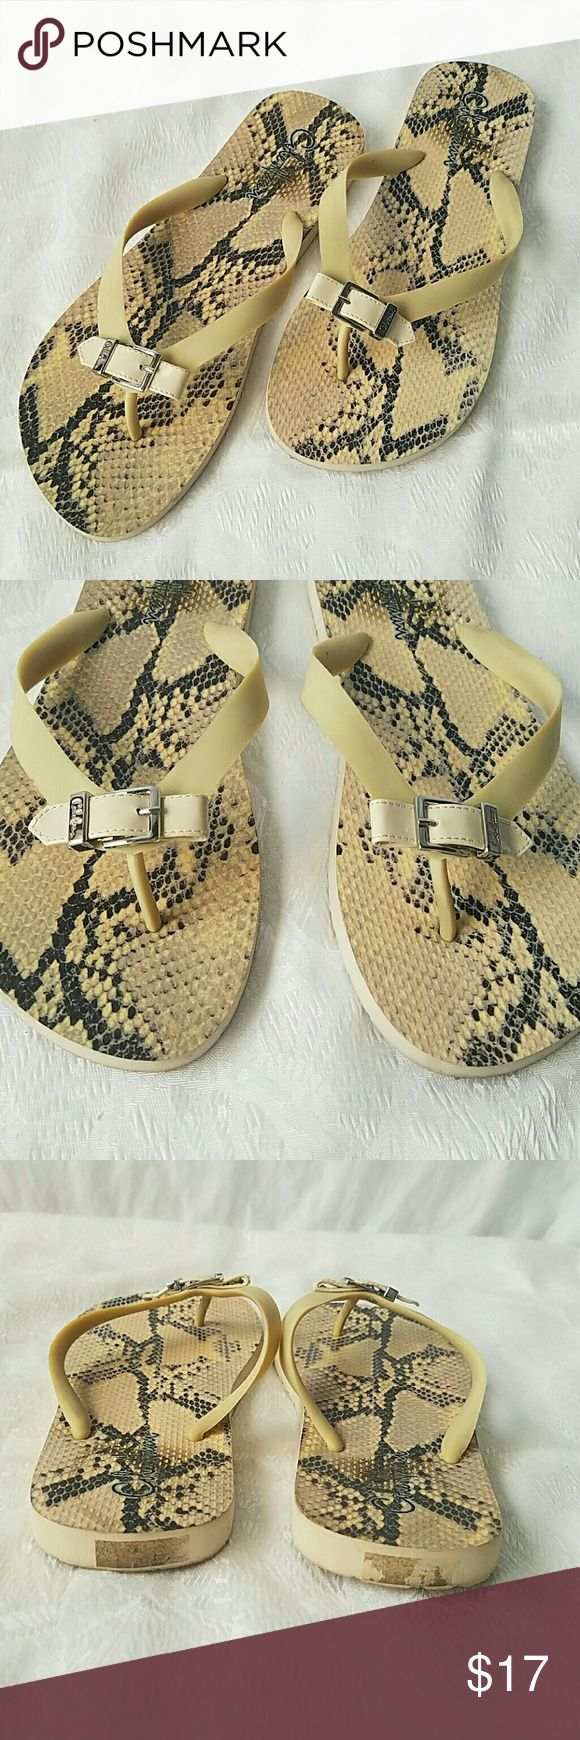 Cole Hann Sandals Cole Hann sandals size 9. Used condition. Signs of wear. Cole Haan Shoes Sandals